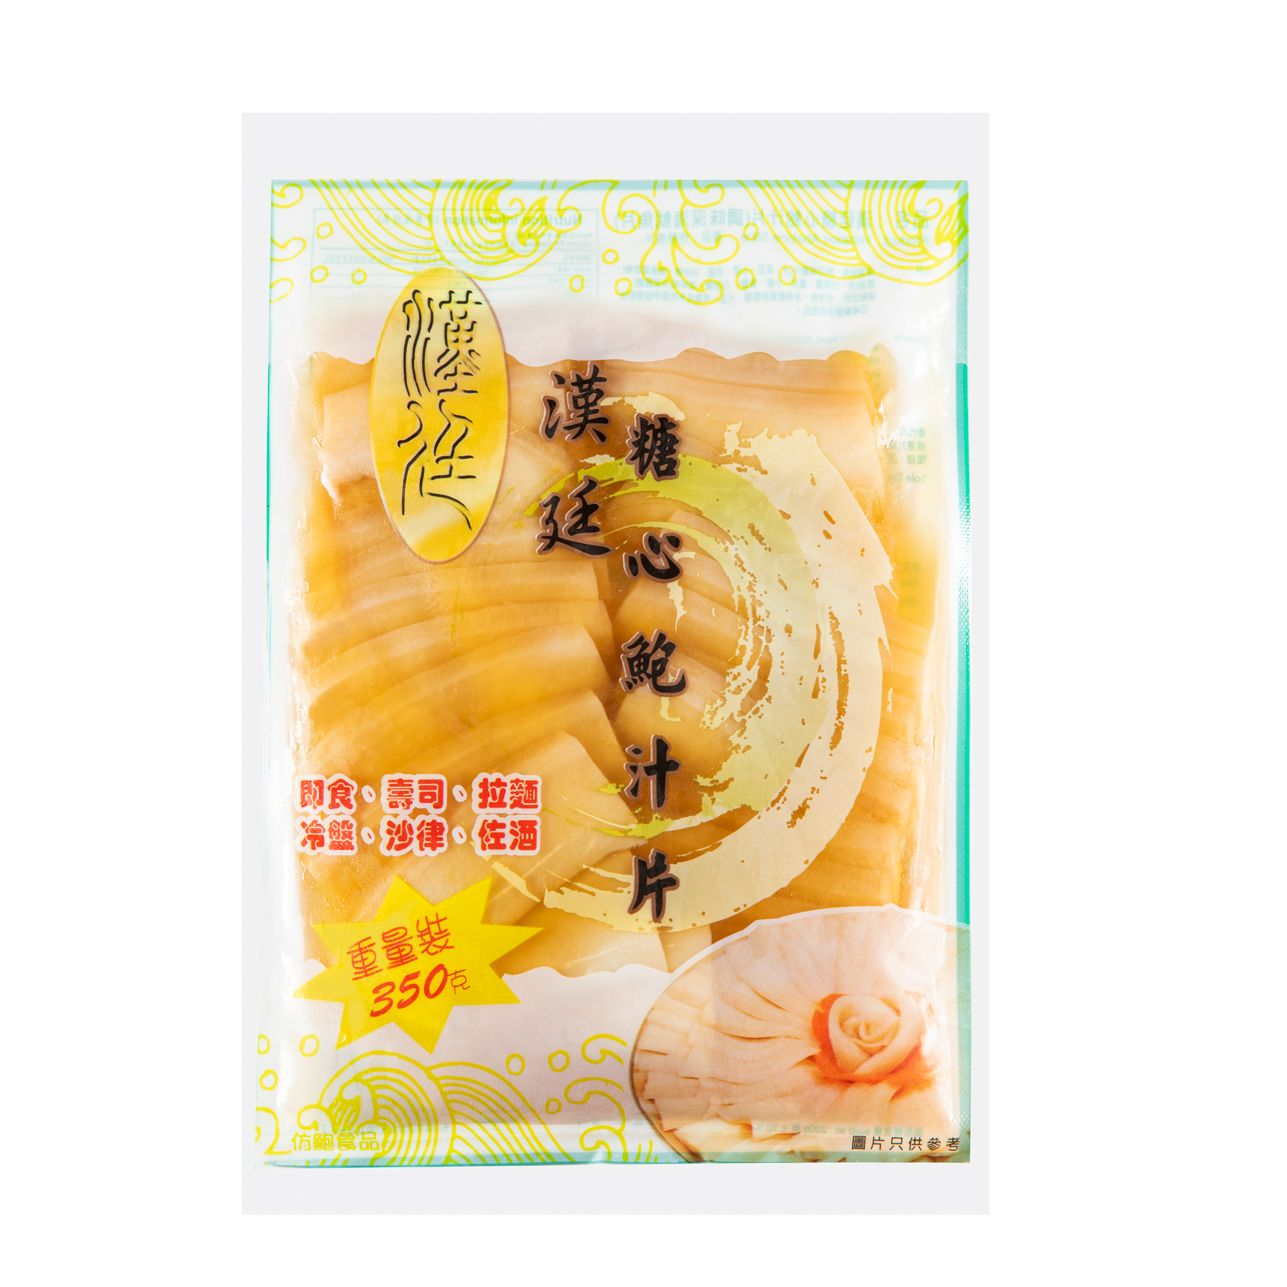 ROYAL BANGUET IMITATION ABALONE SLICE 350G